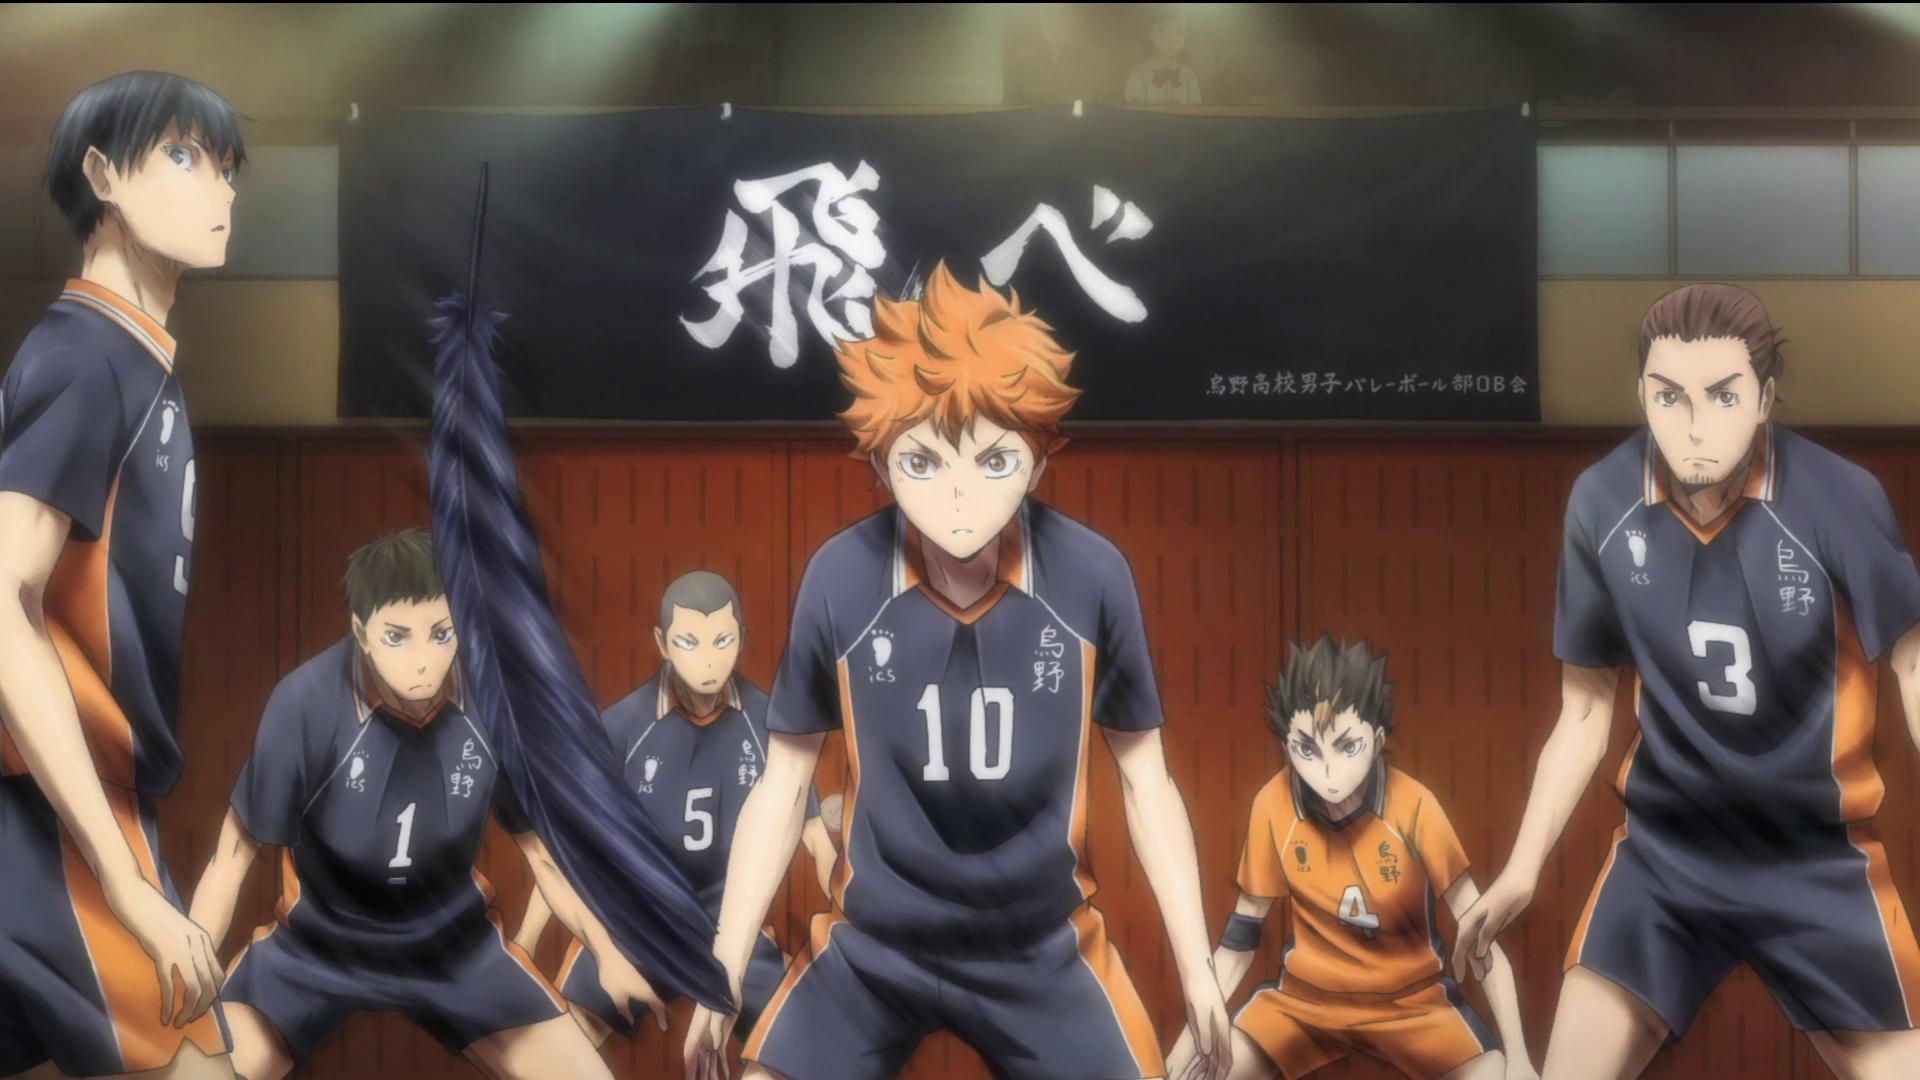 Haikyuu! Gets 2 New Compilation Fims